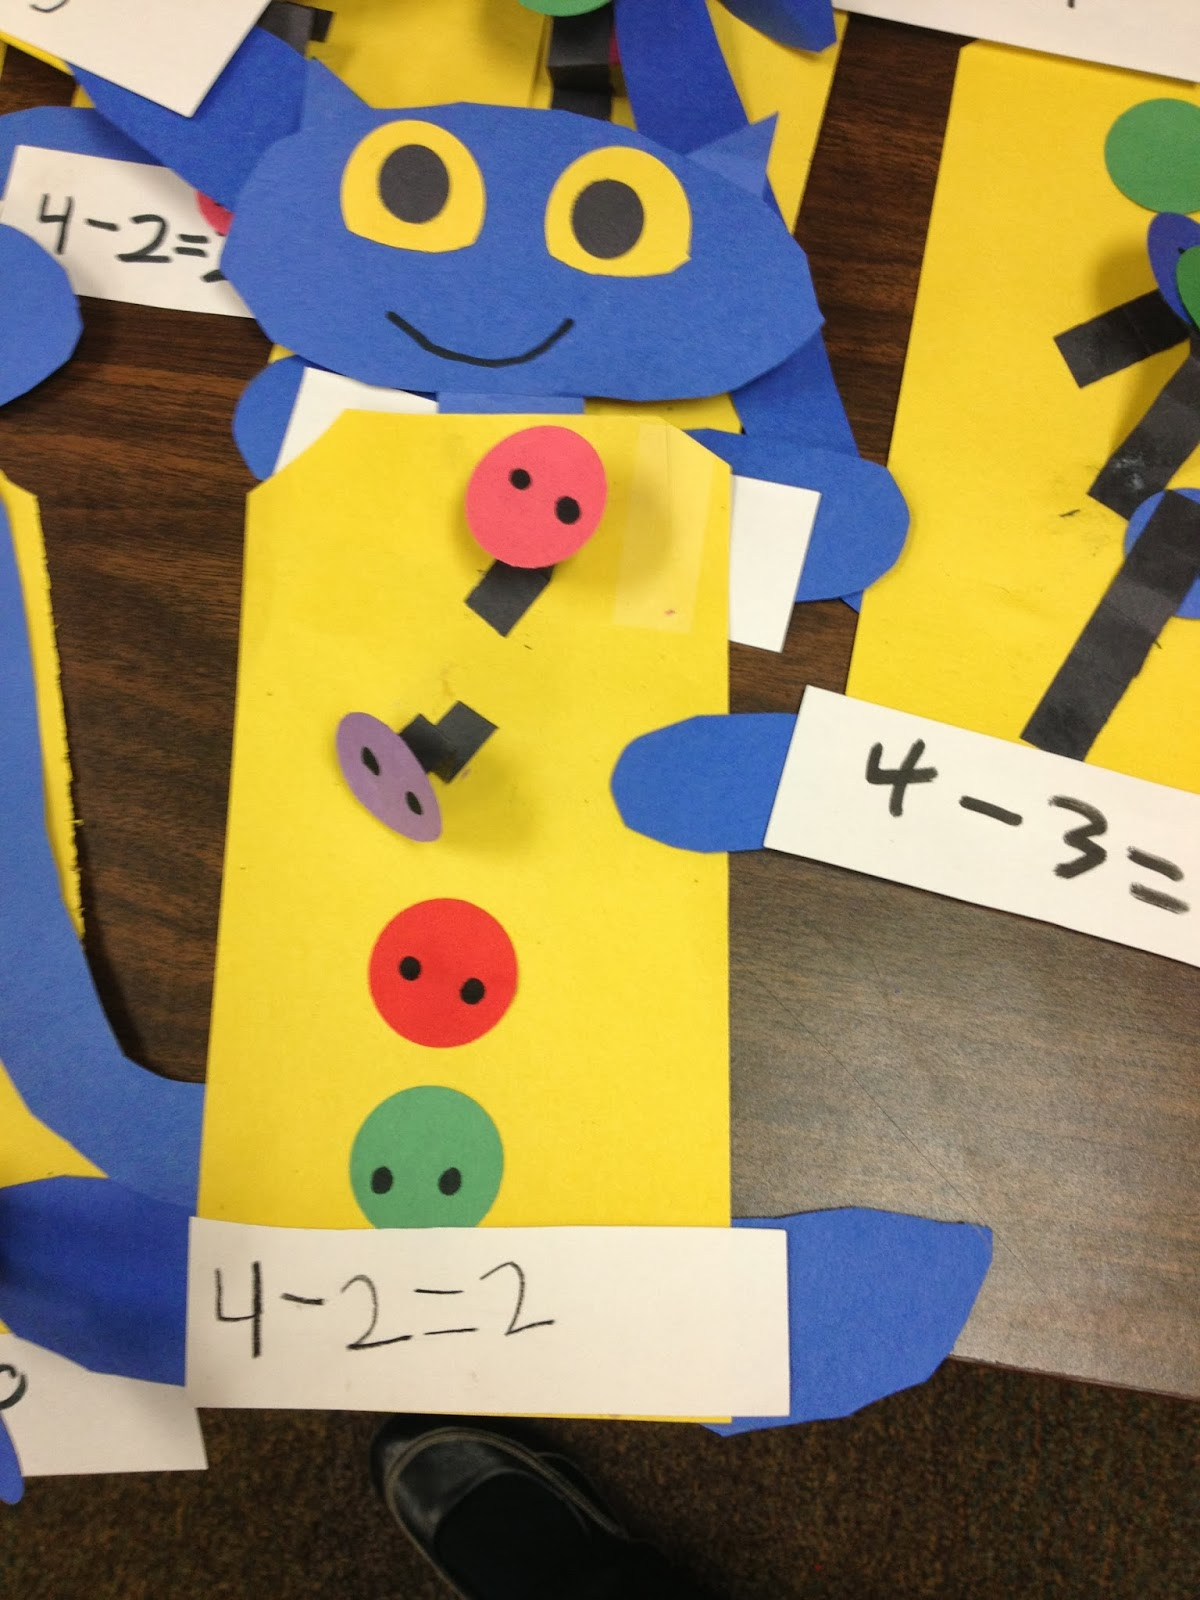 Kinder Garden: Kroger's Kindergarten: Pete The Cat Subtraction